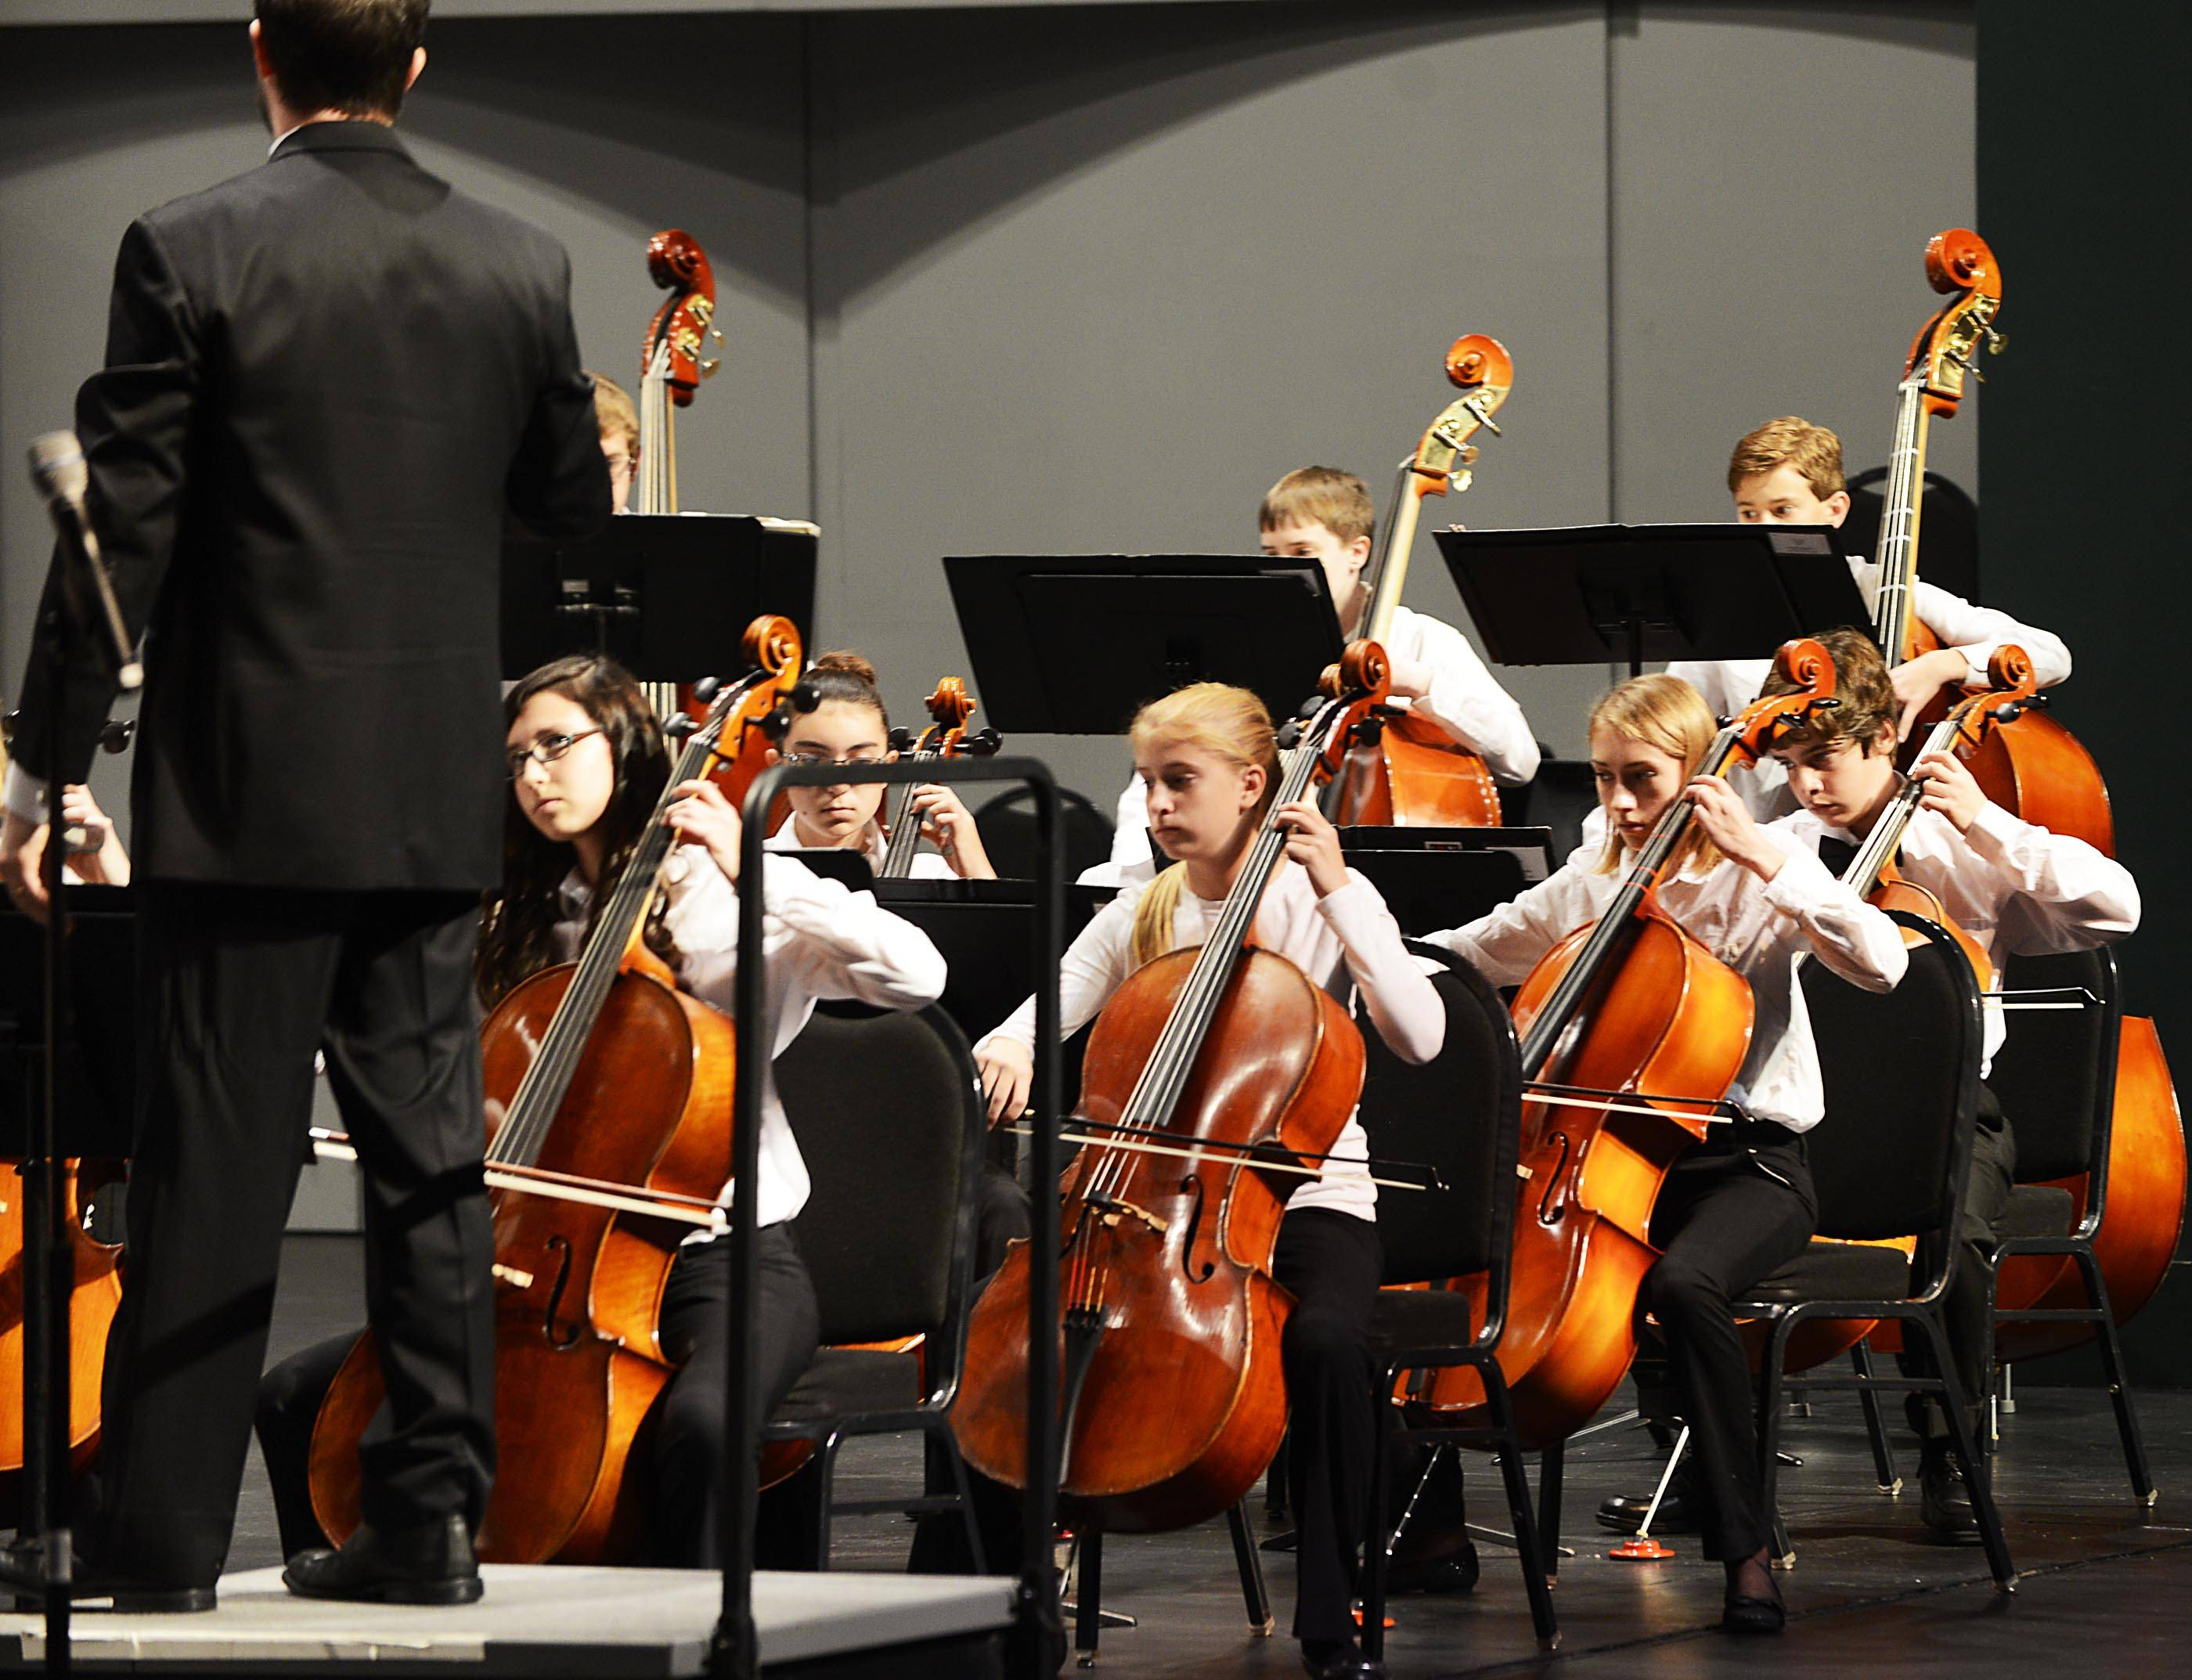 "This weekend, the Elgin Youth Symphony Orchestra continues its 38th season with ""Fantastical Banquet"" concerts, celebrating the genius and influence of William Shakespeare through music inspired by his canon."